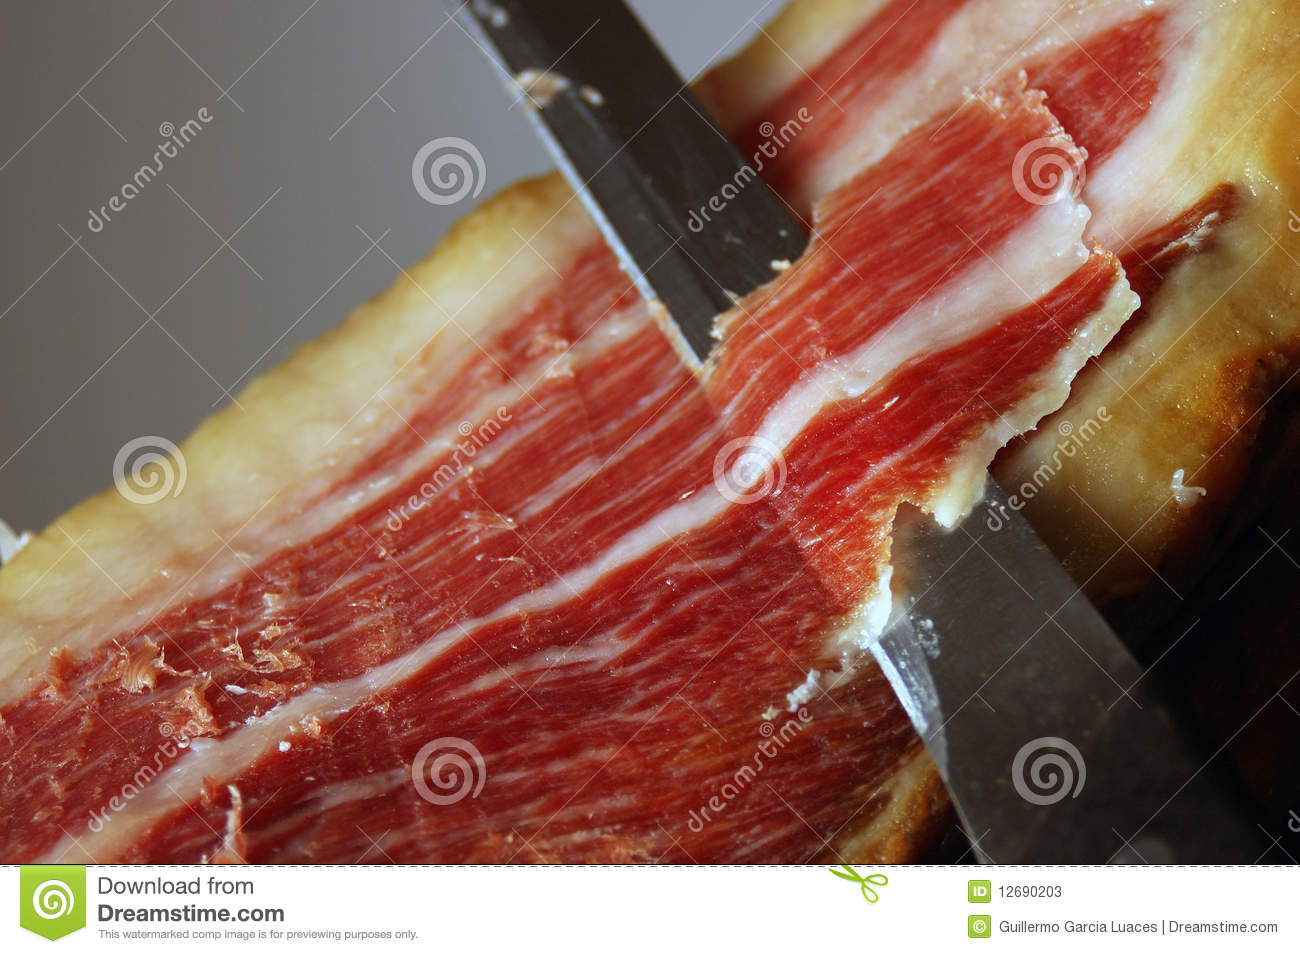 Court of a typical Jamon Iberico ham from Spain